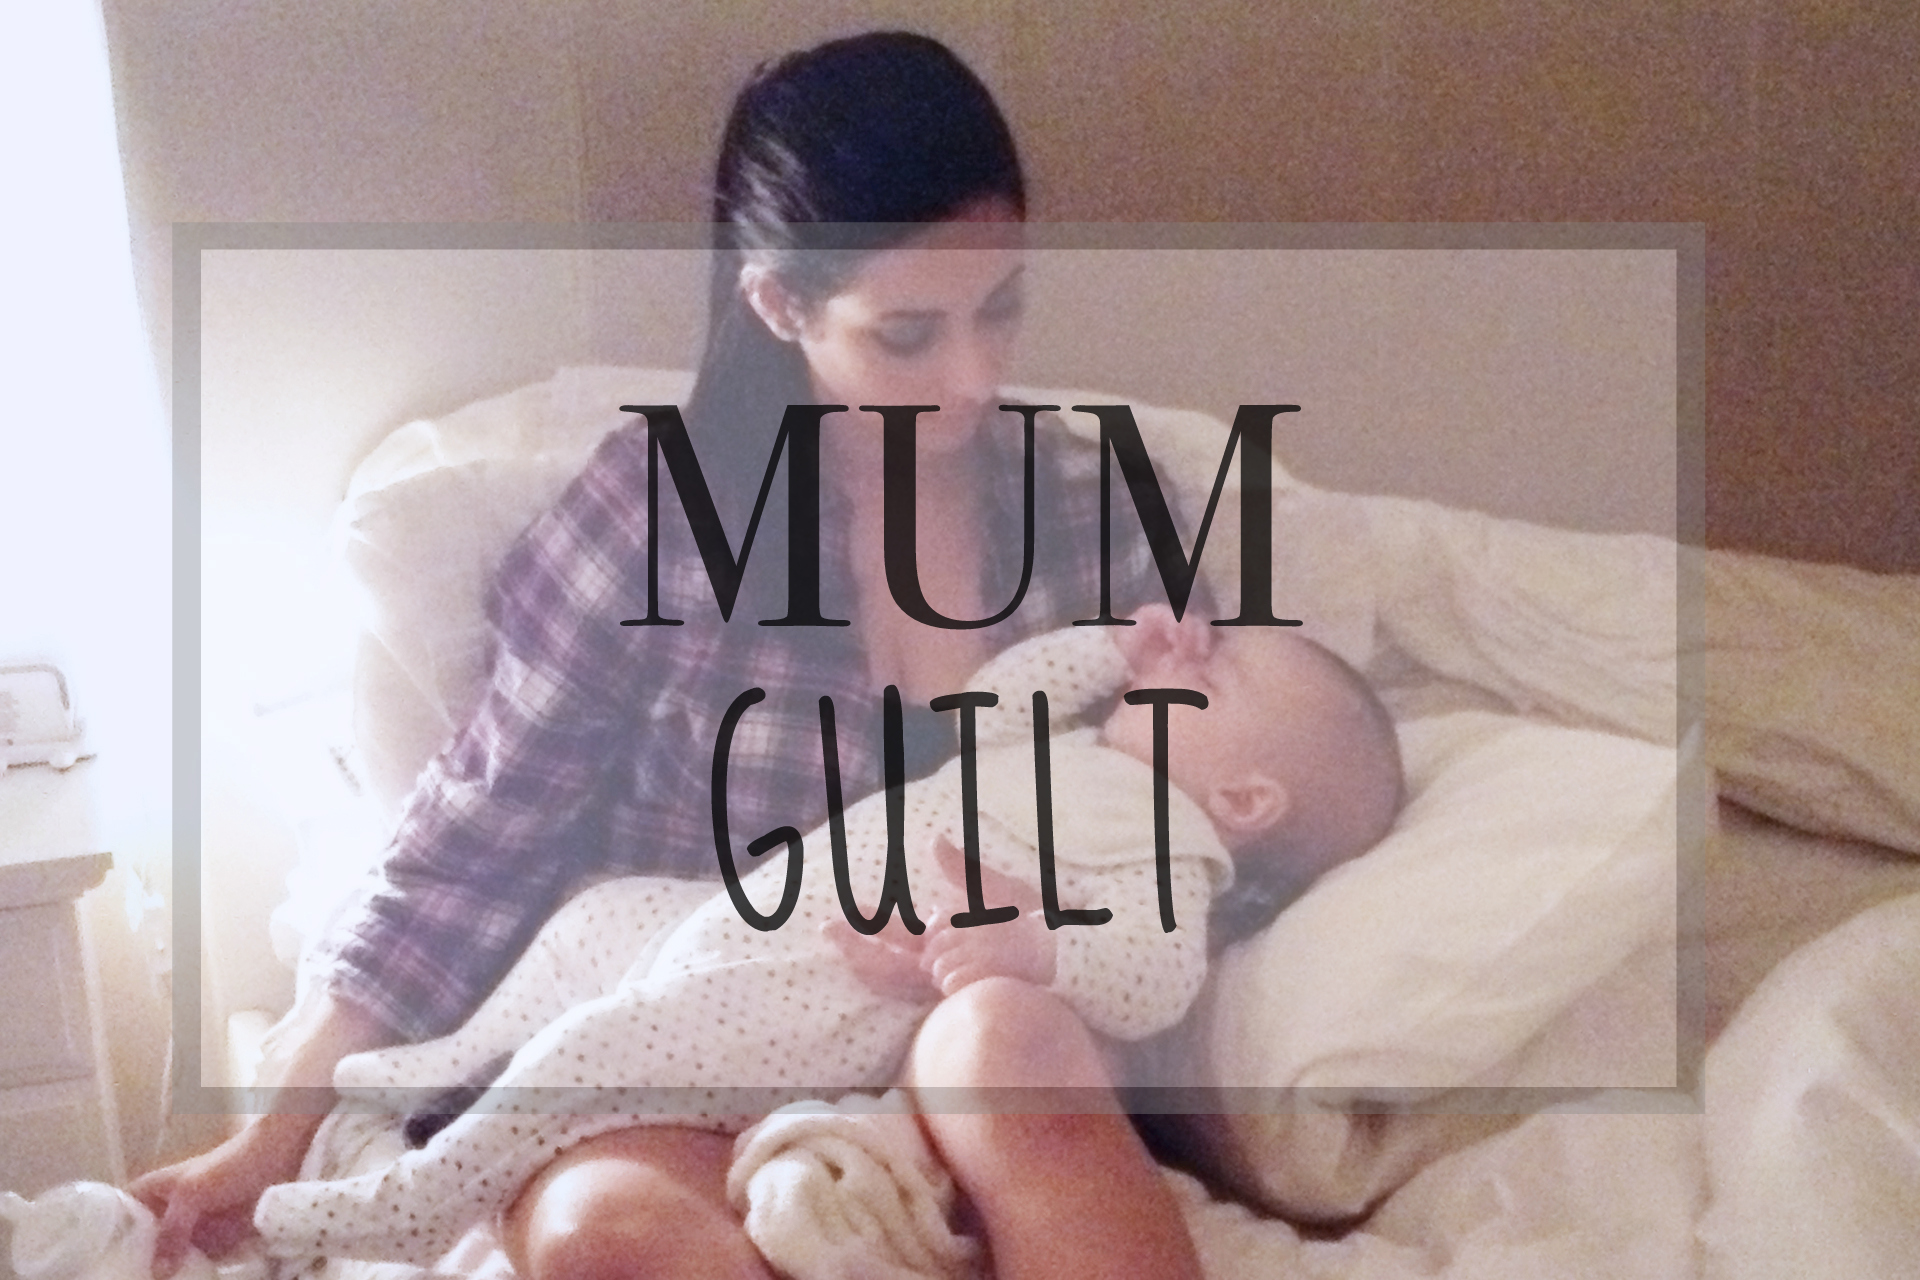 Ditch the Mum Guilt